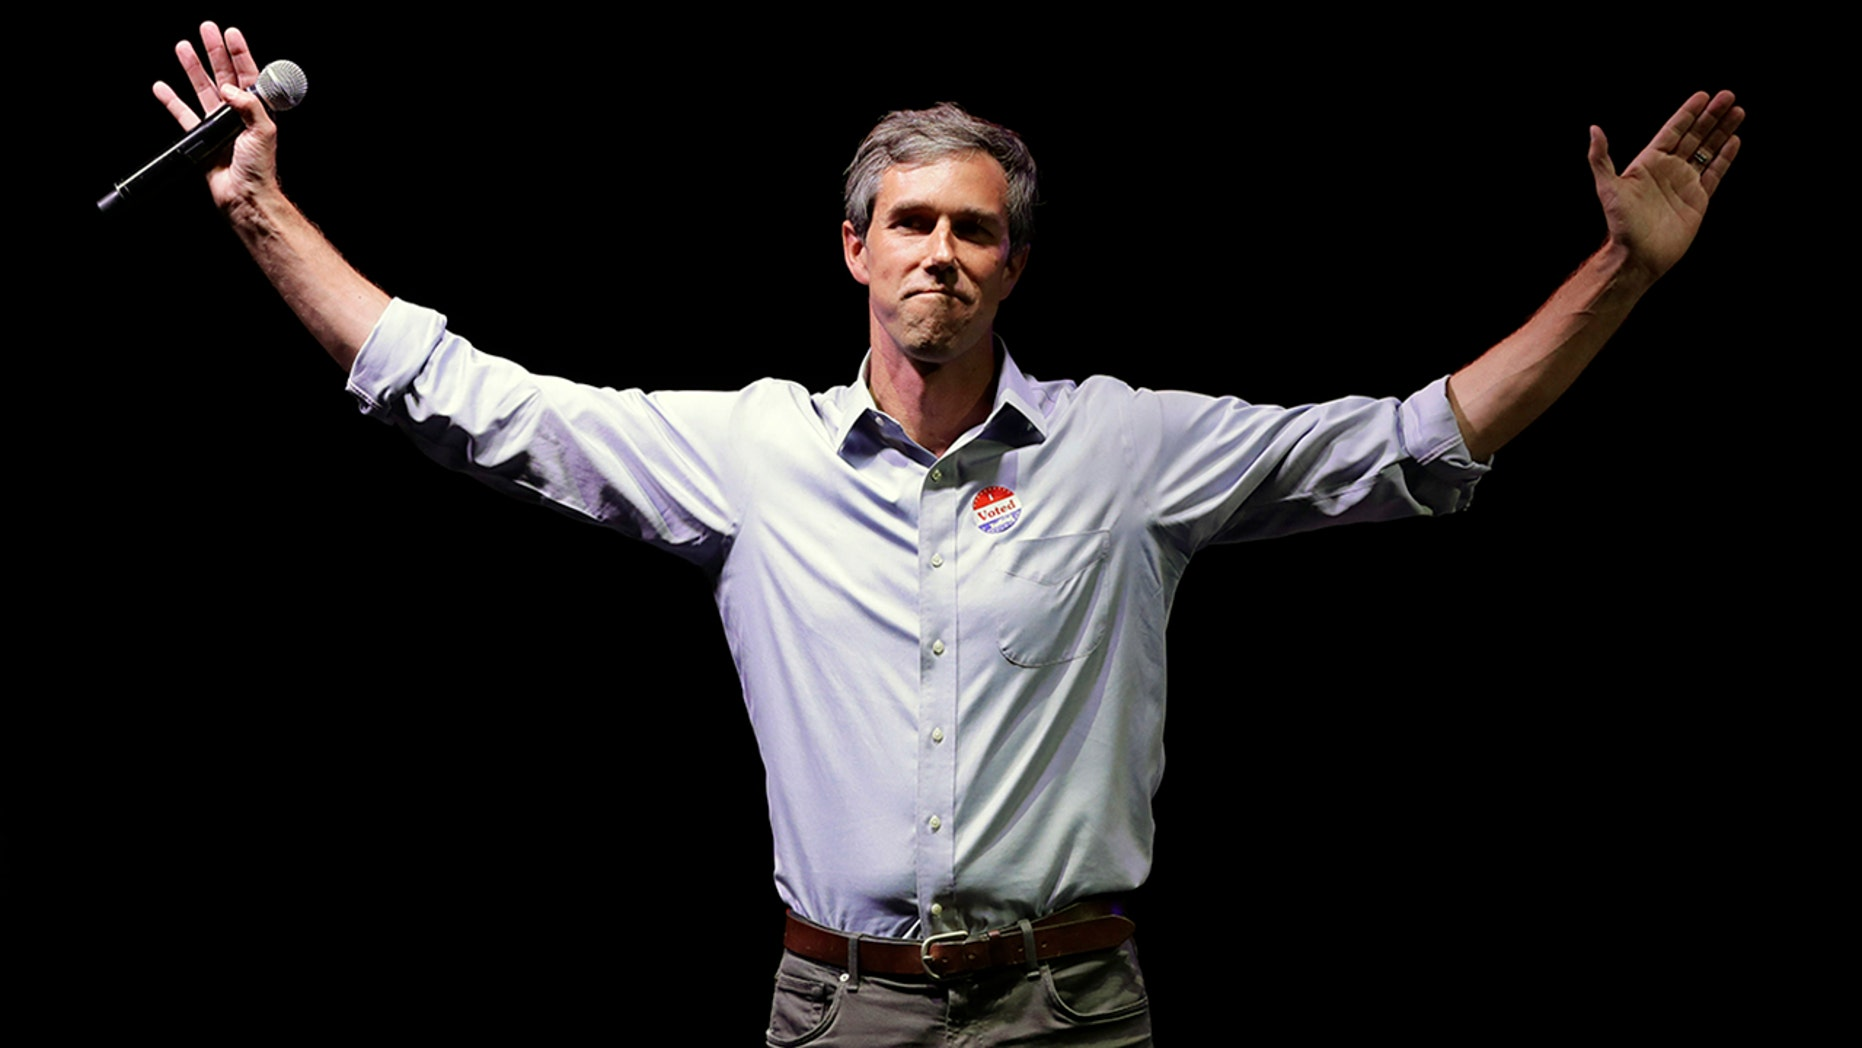 FILE: Rep. Beto O'Rourke, D-Texas, the 2018 Democratic candidate for U.S. Senate in Texas, makes his concession speech at his election night party in El Paso, Texas, Nov. 6, 2018.